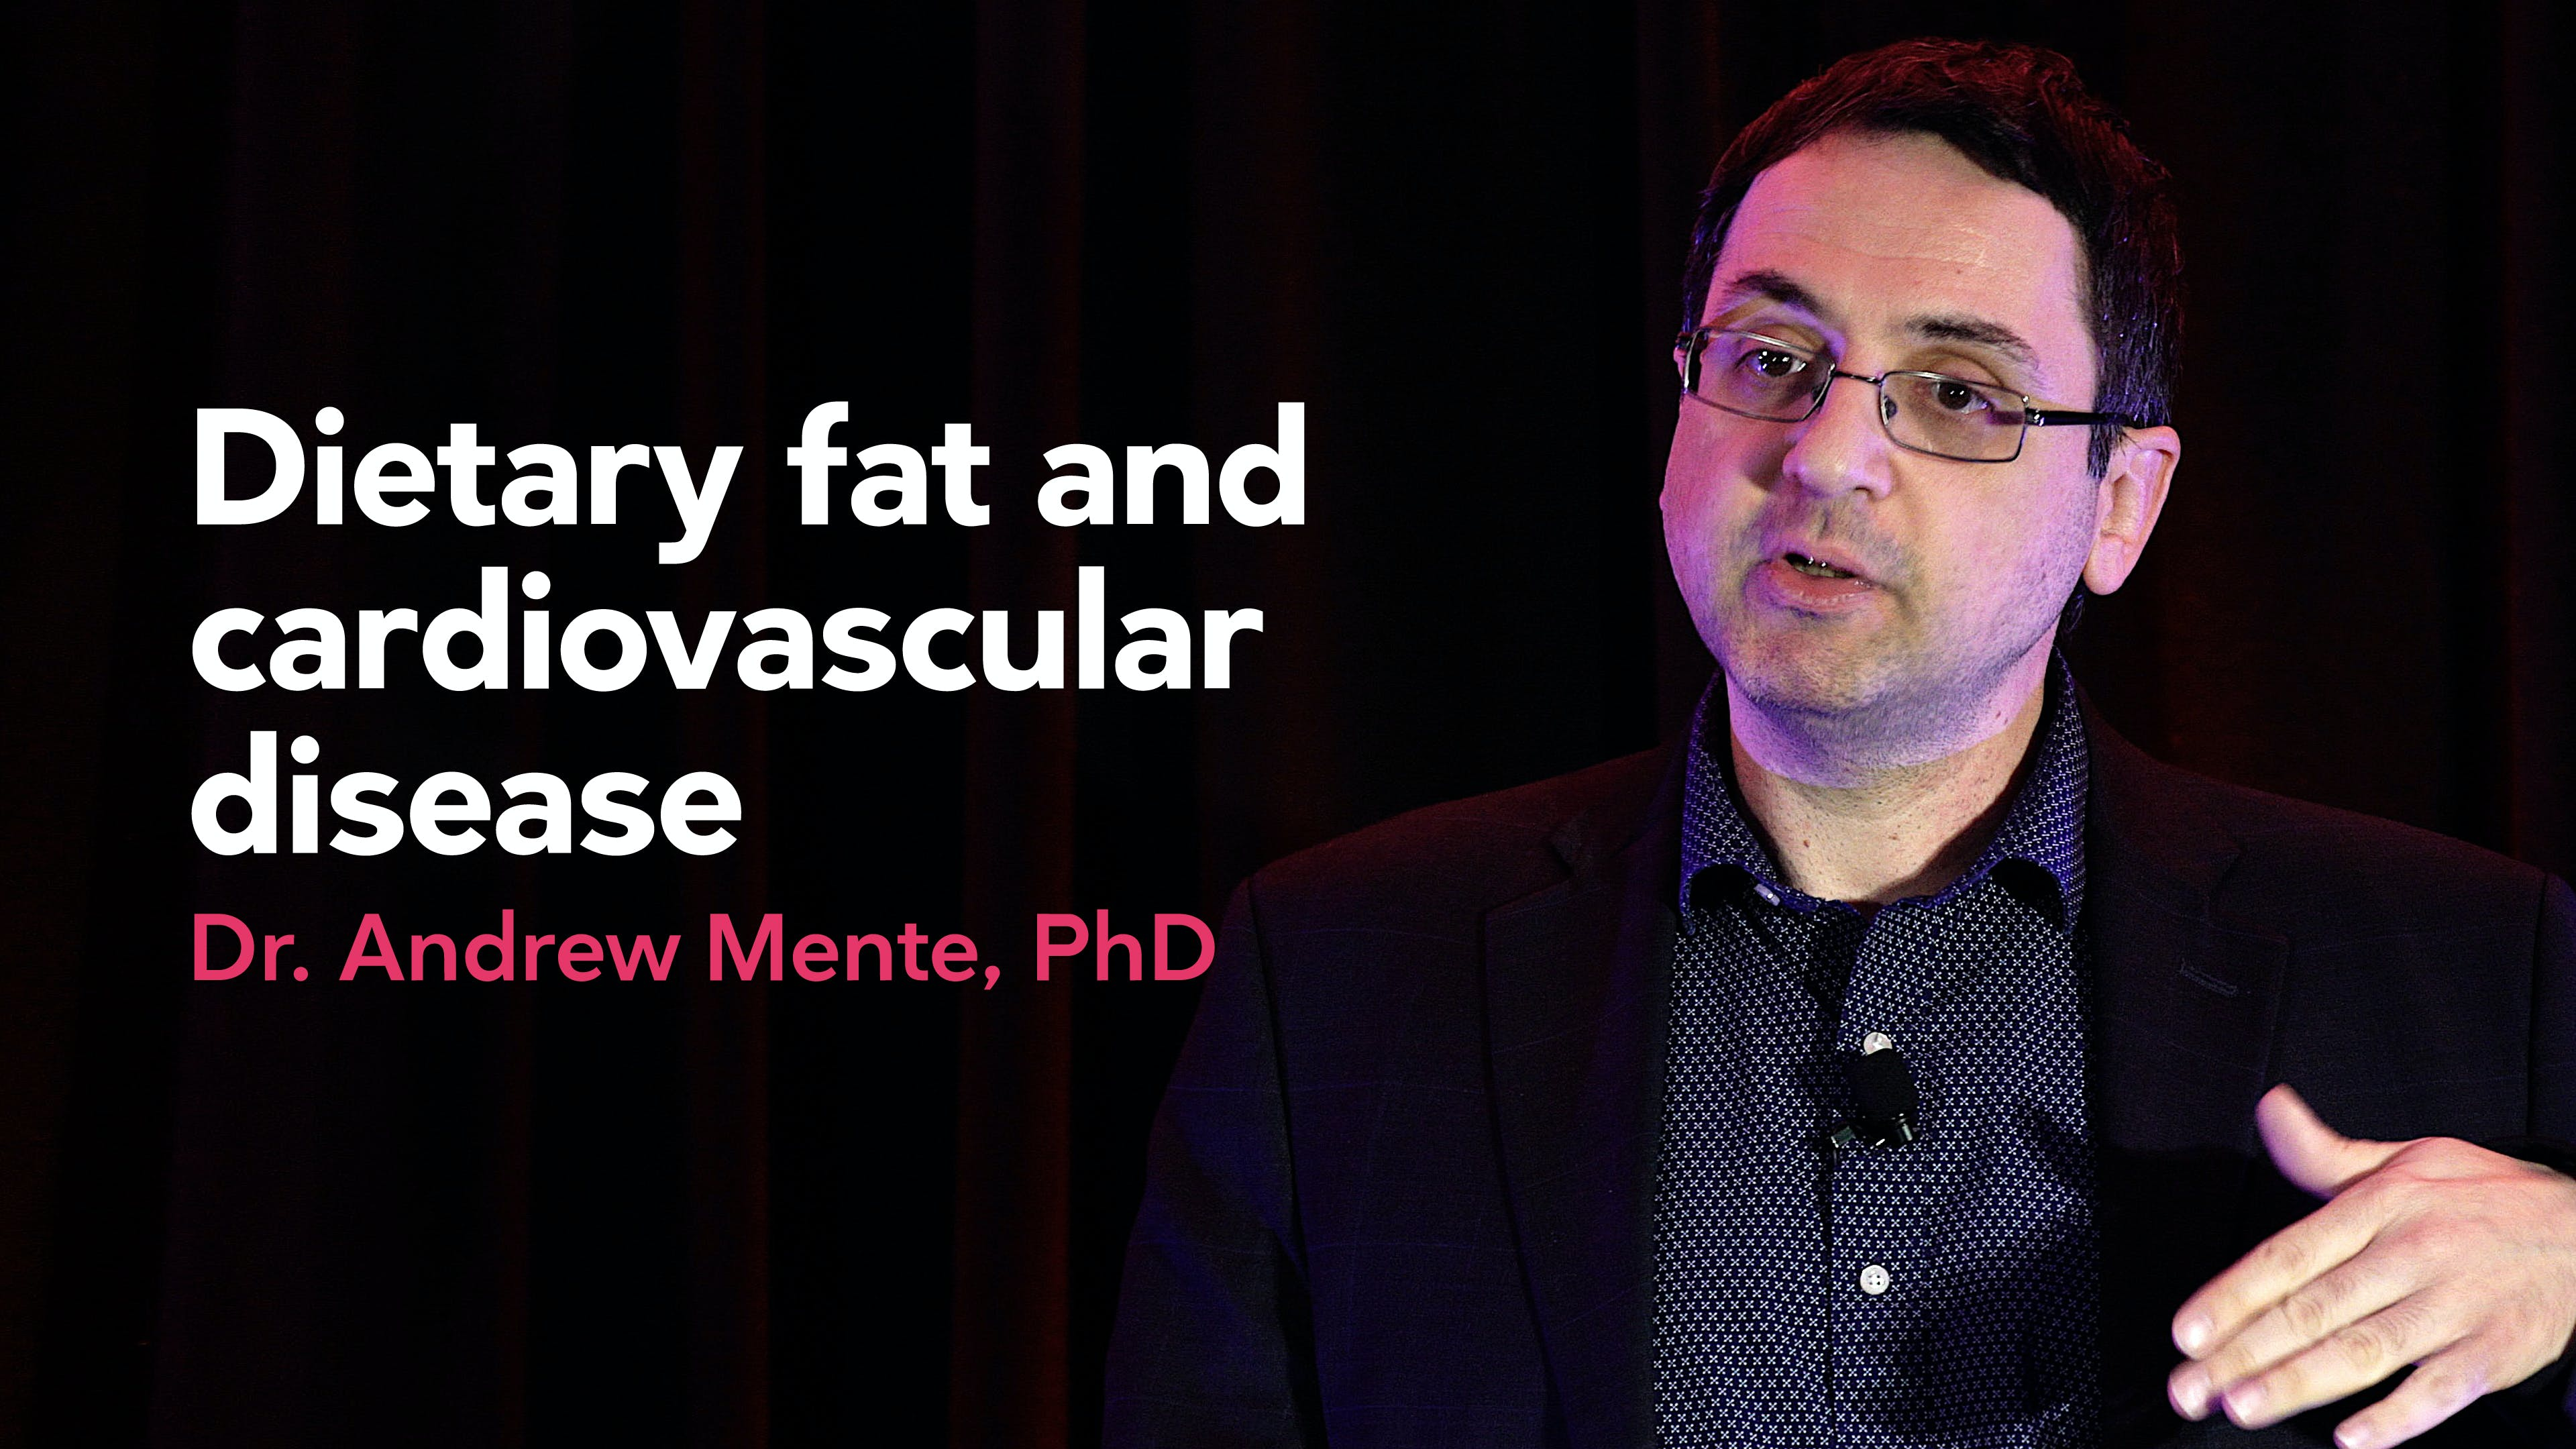 Dietary fat and cardiovascular disease